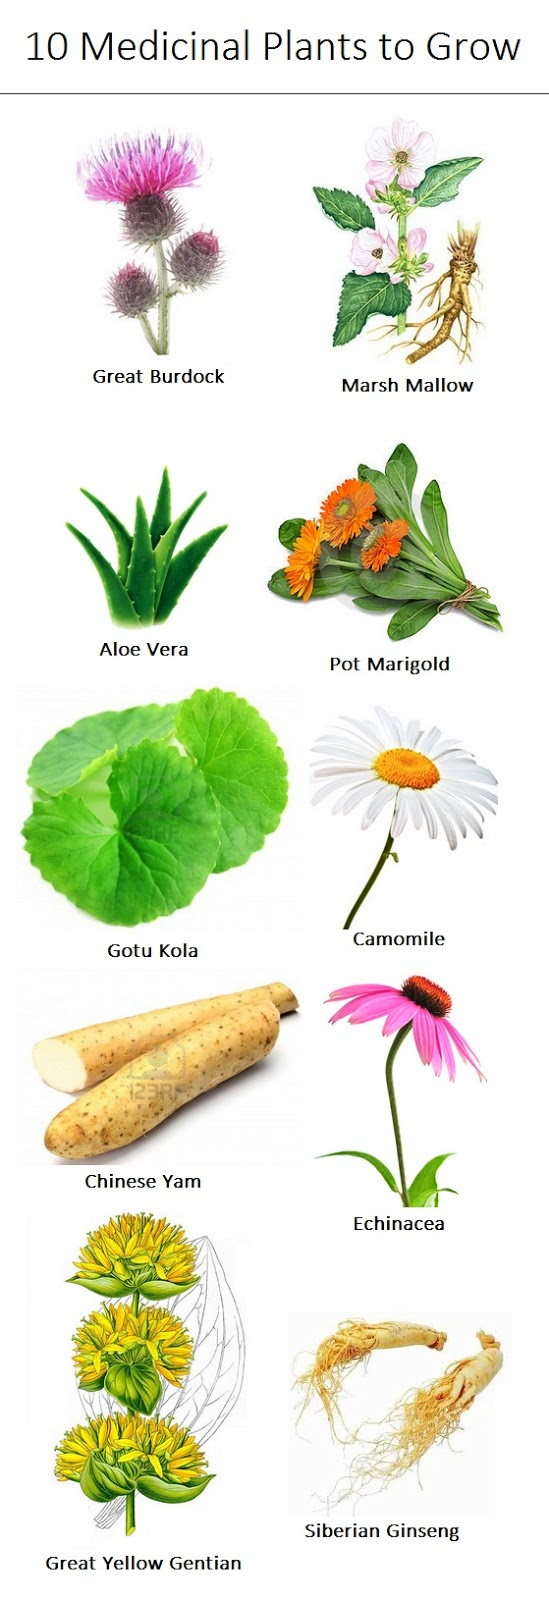 10 herbal medicine Certain herbs hold medicinal properties that promote healing for the body learn about the 30 most popular medical herbs to grow to create your own medicine.